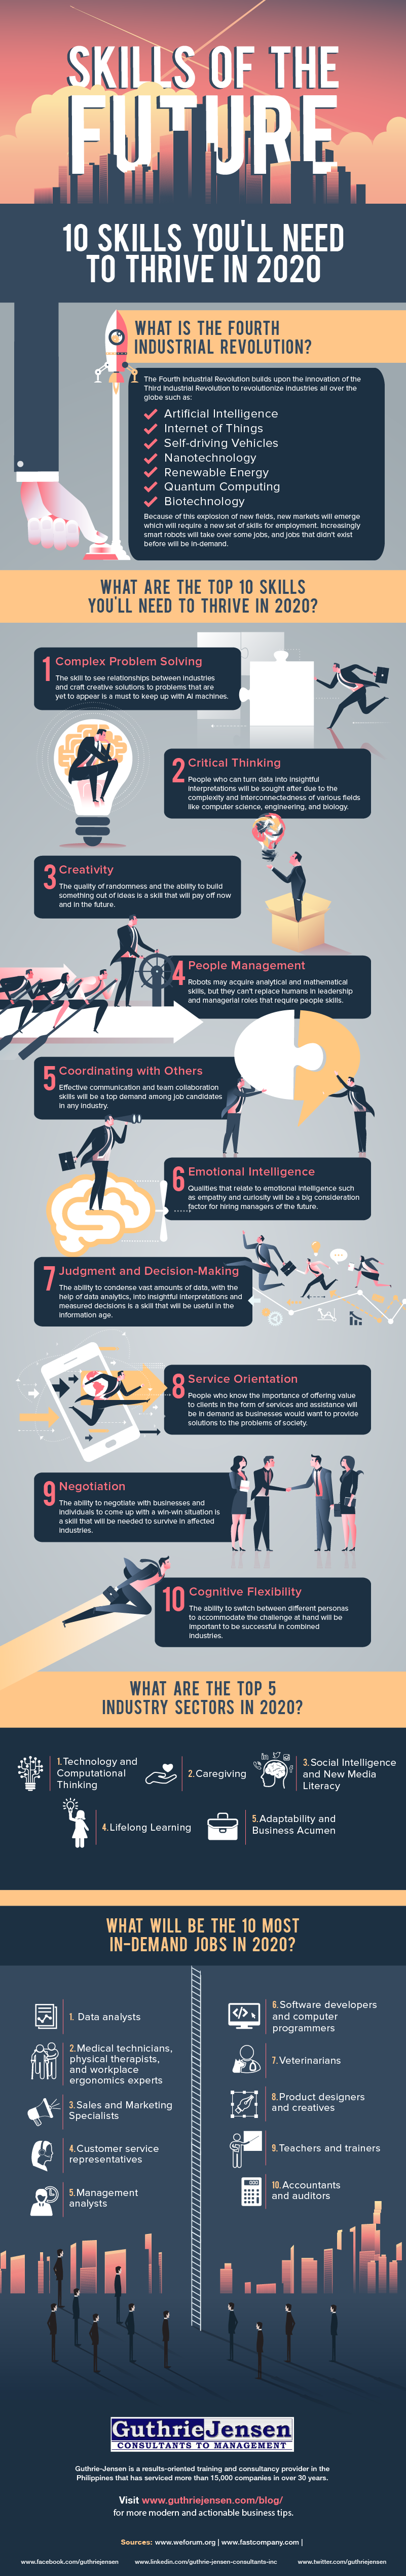 Skills of the Future: 10 Skills You'll Need To Thrive in 2020 #infographic